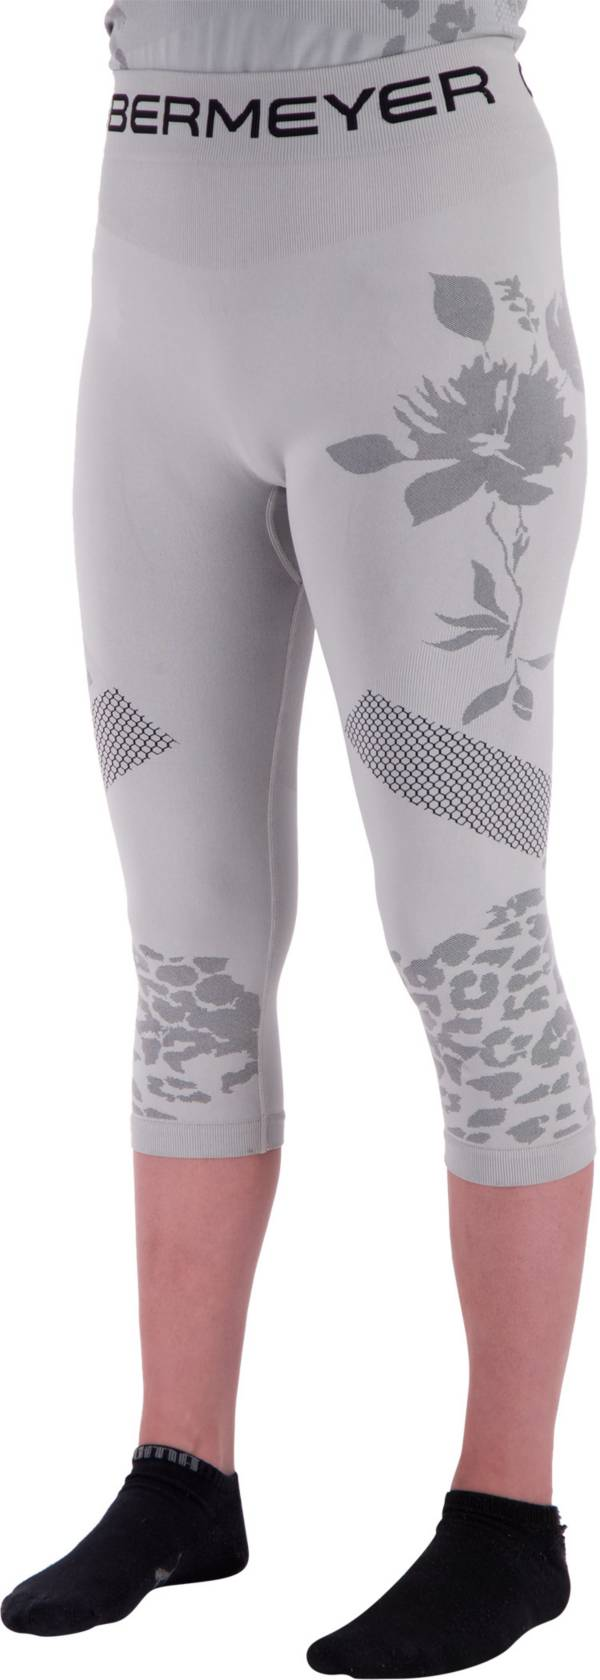 Obermeyer Women's Glaze Baselayer Tights product image